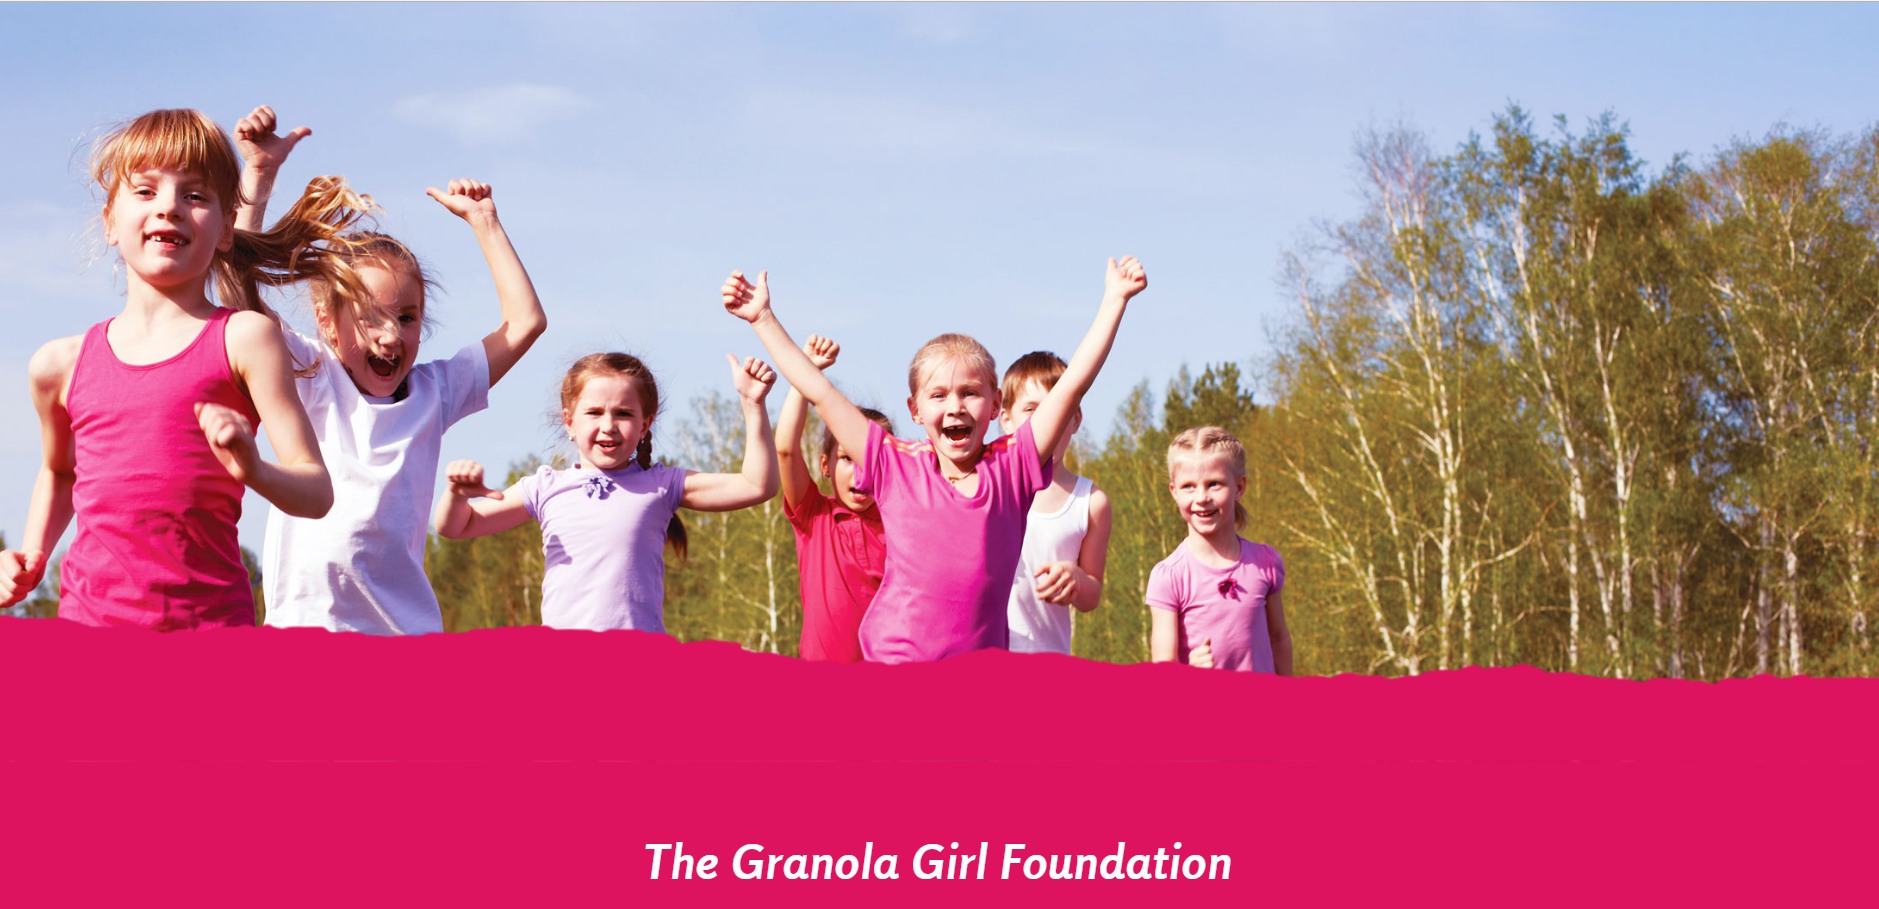 The Launch of The Granola Girl Foundation